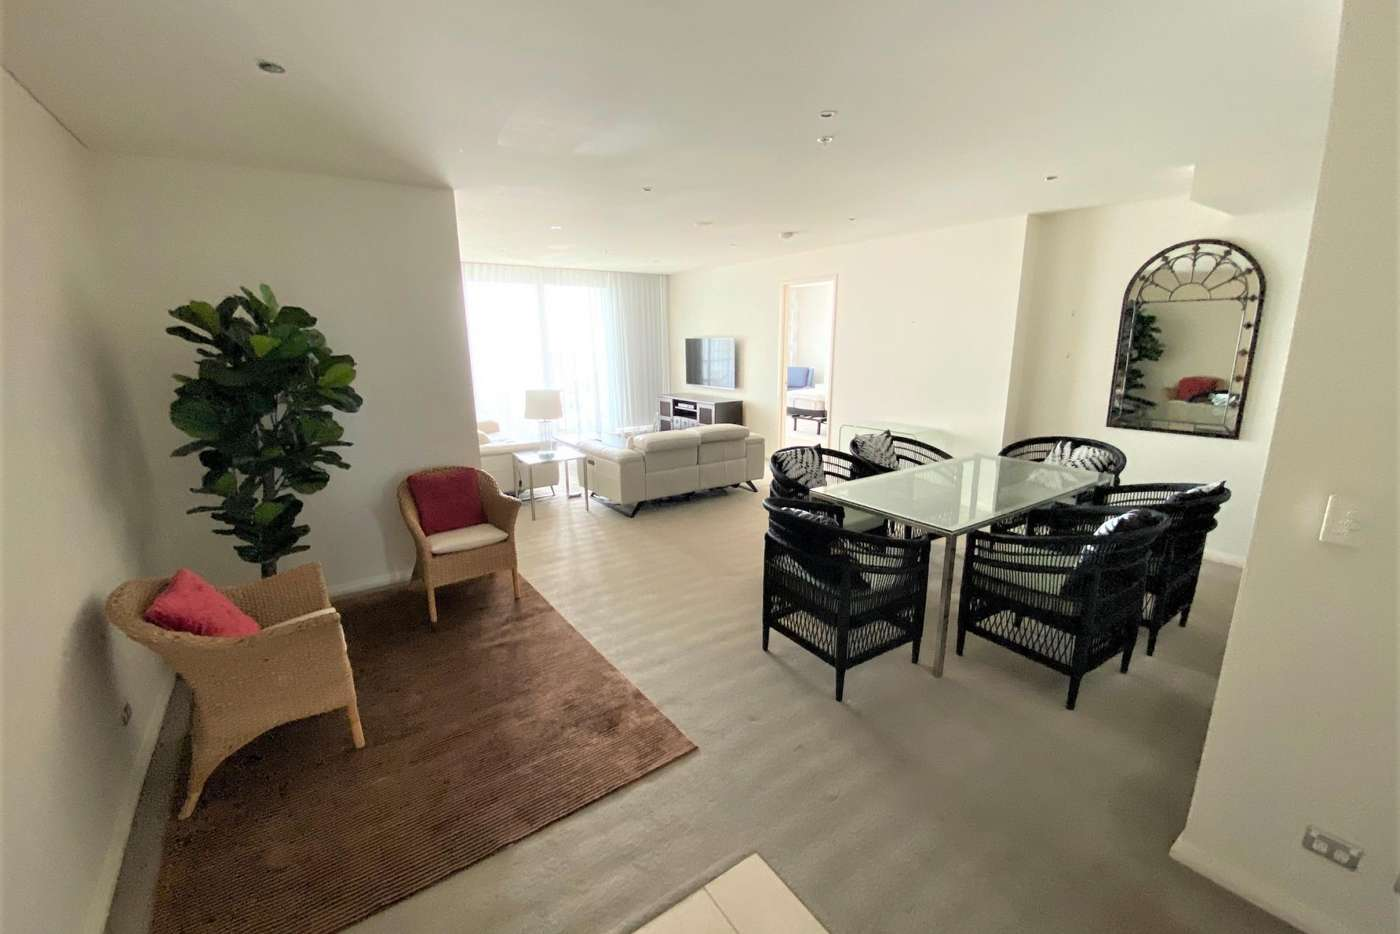 Main view of Homely apartment listing, Unit 1701/1 Como Crescent, Southport QLD 4215